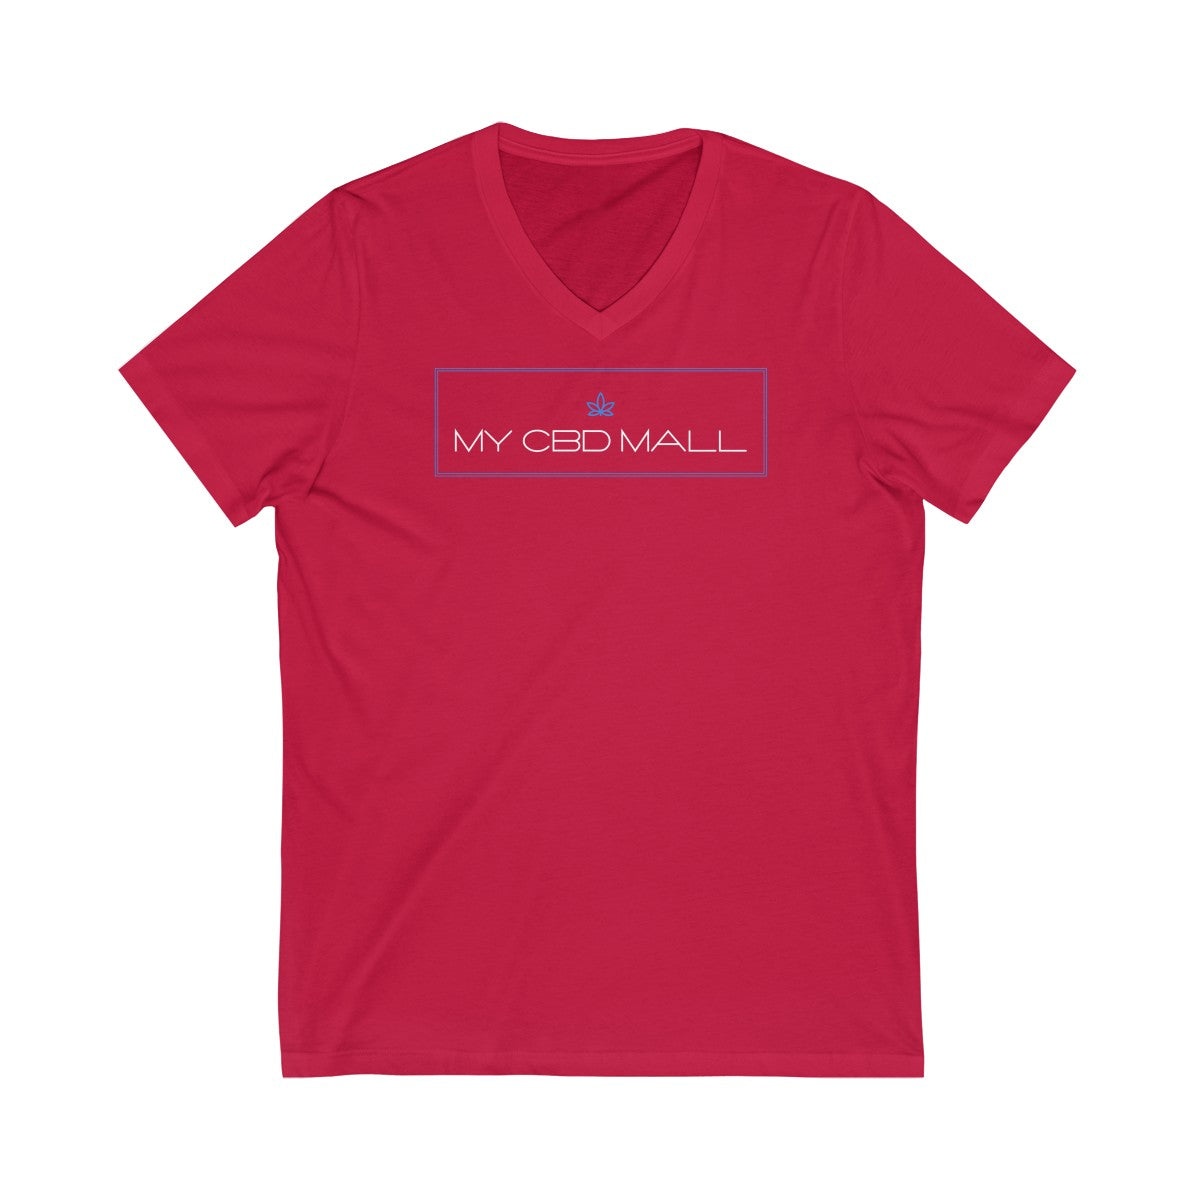 Unisex Jersey Short Sleeve V-Neck Tee - My CBD Mall